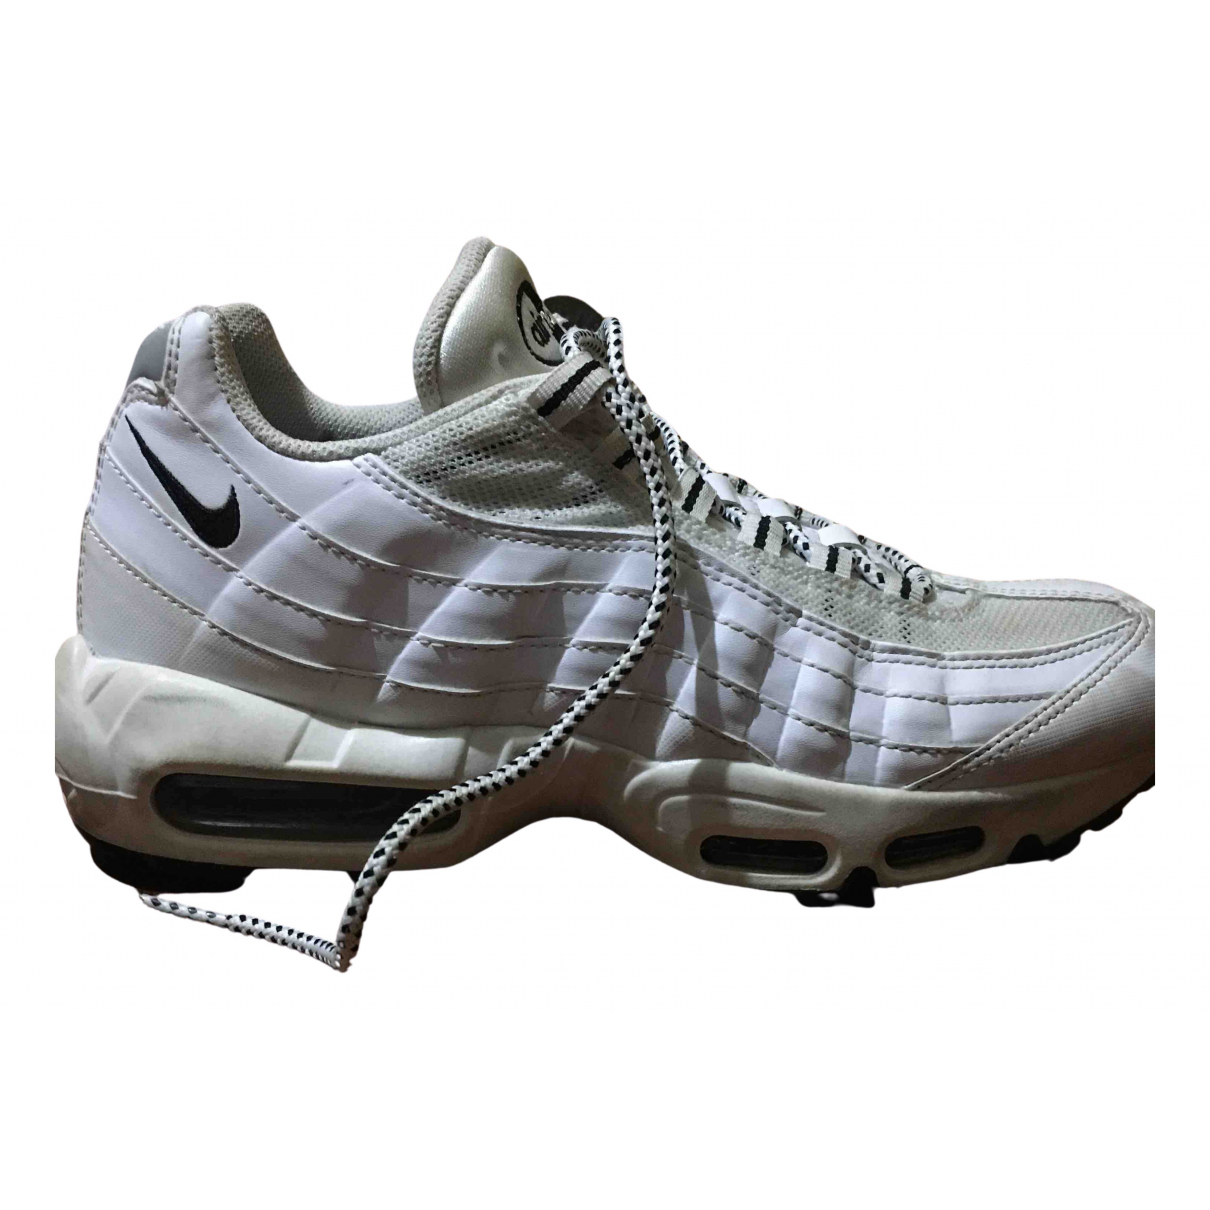 Nike Air Max 95 White Leather Trainers for Men 41 EU